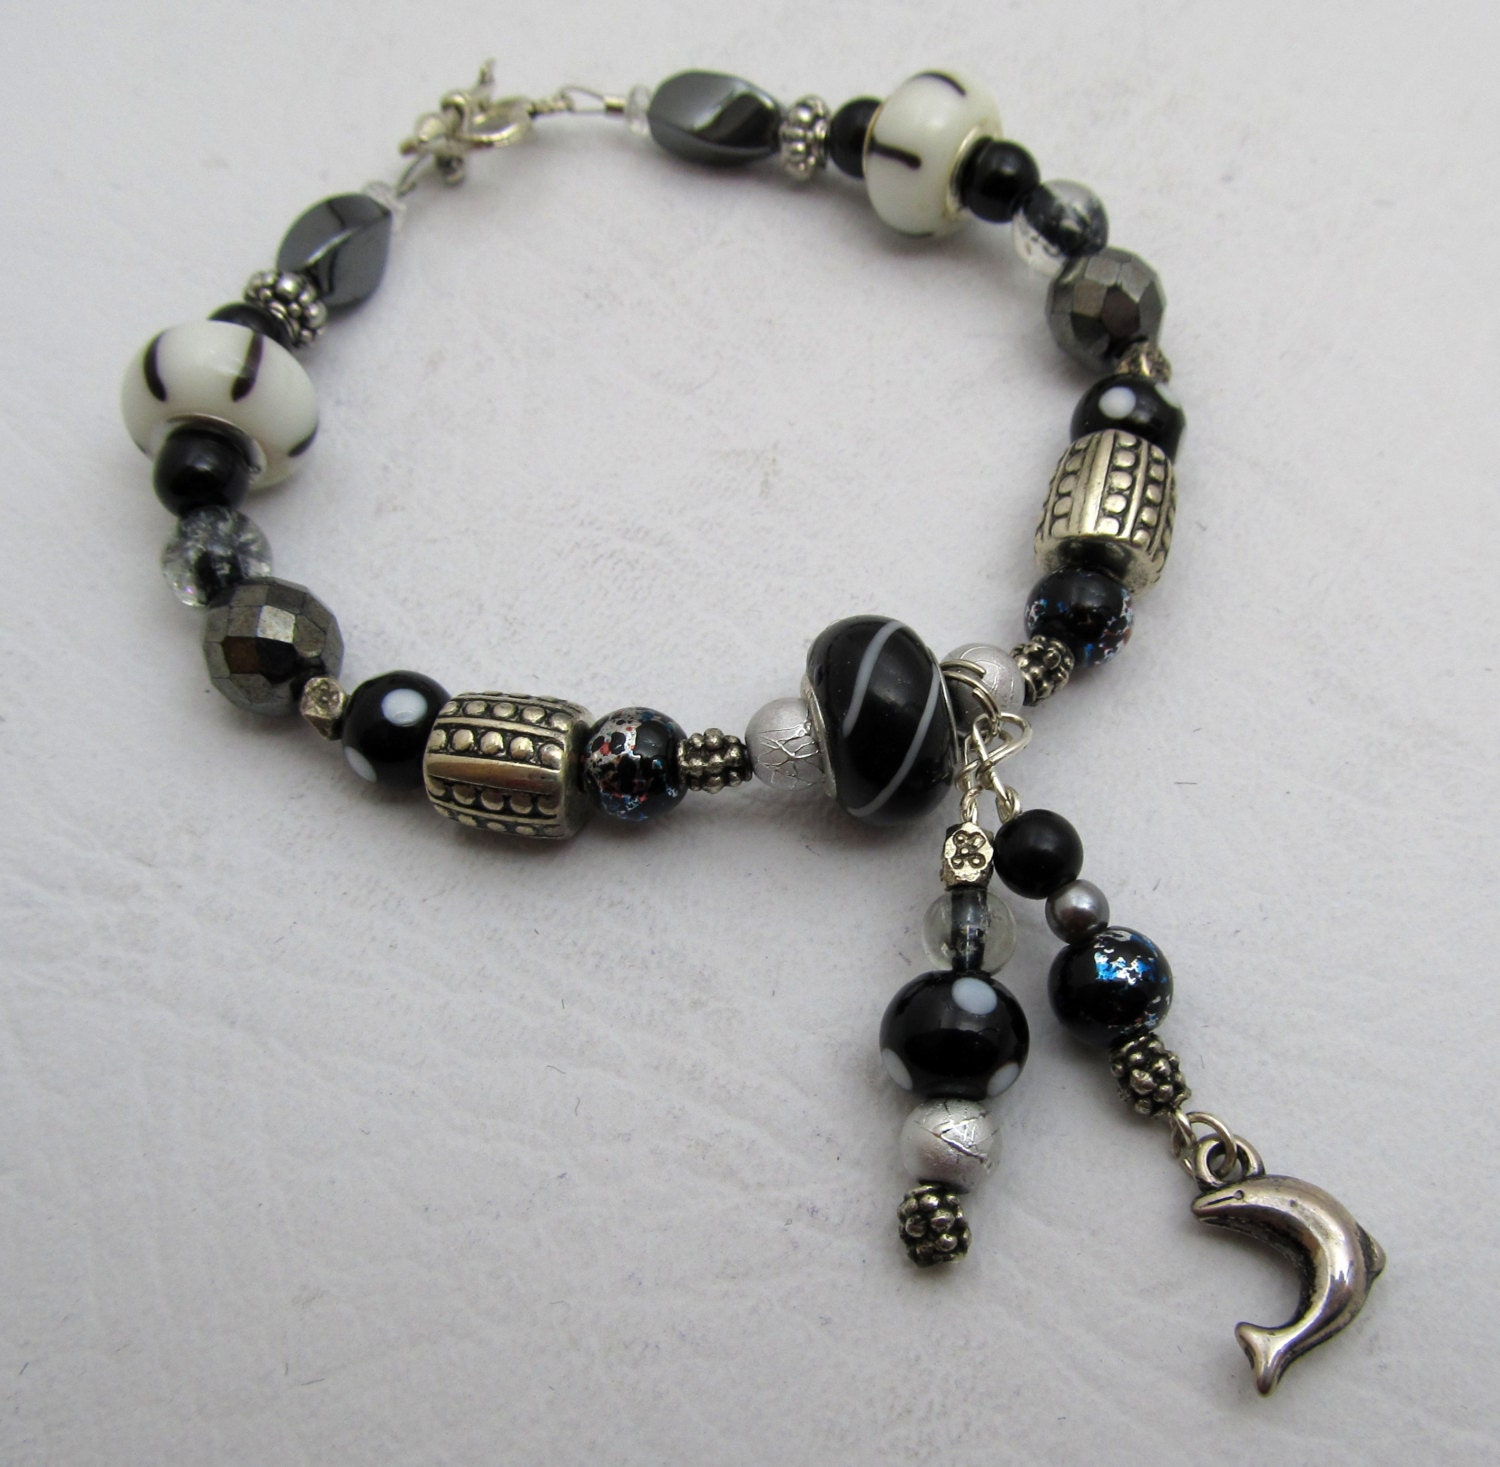 Dolphin Charm Bracelet: Black & White Beaded Dangle Charm Bracelet Dolphin Lampwork